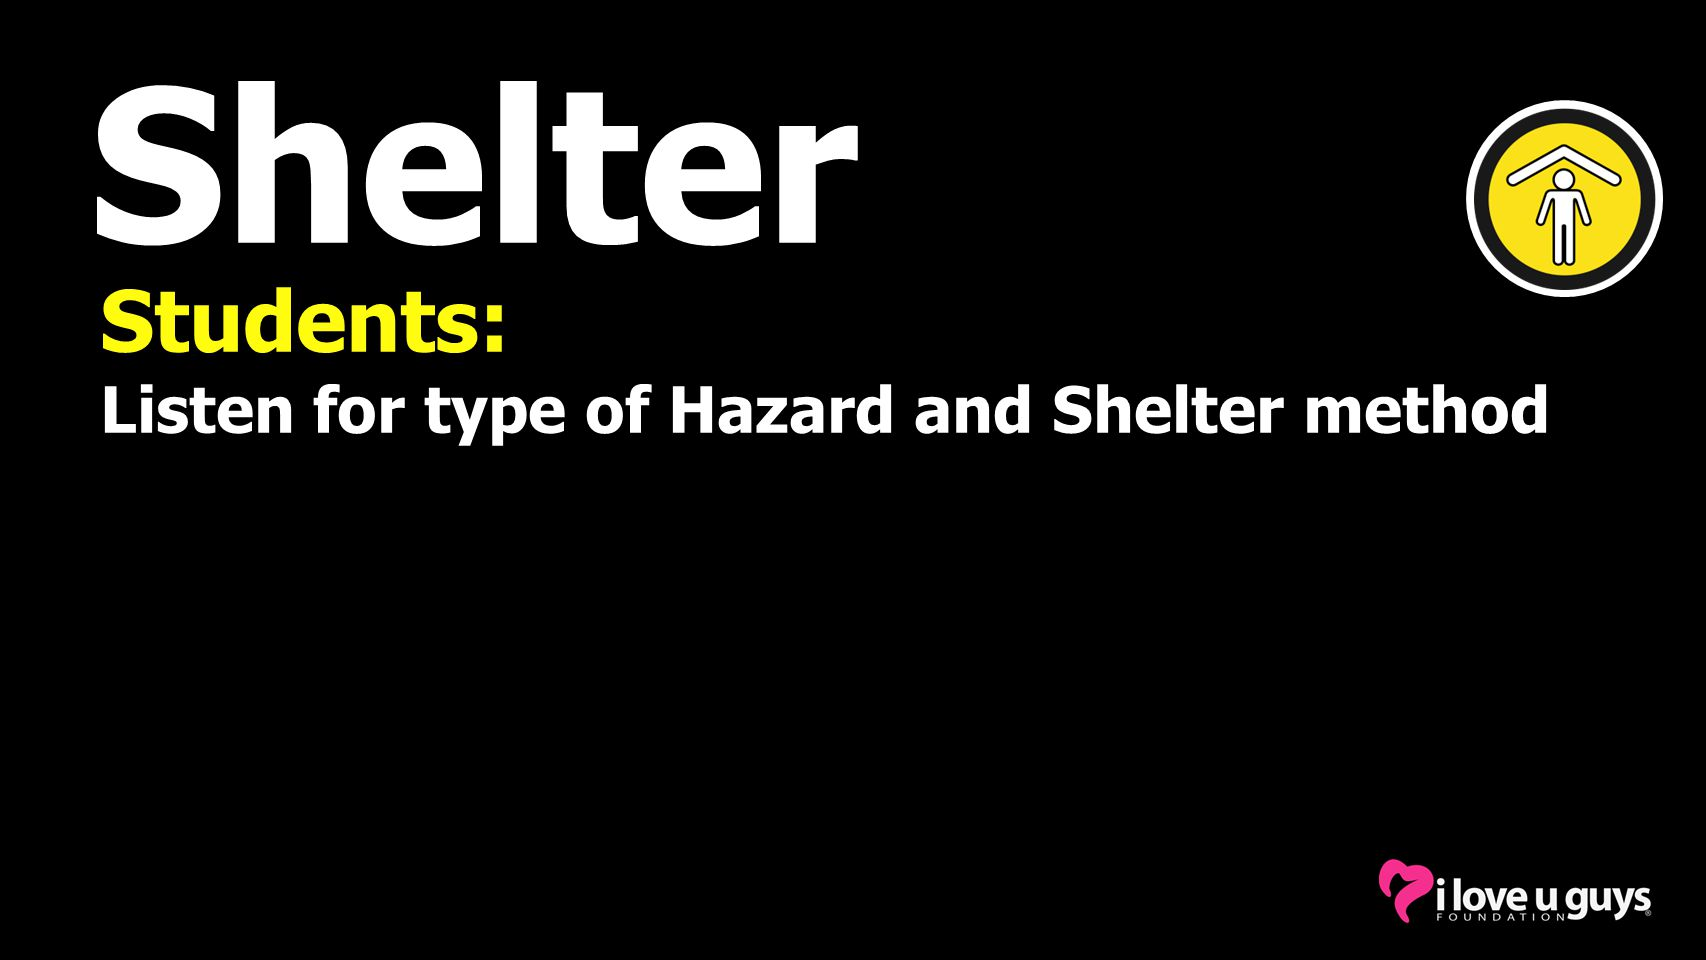 Shelter Students: Listen for type of Hazard and Shelter method